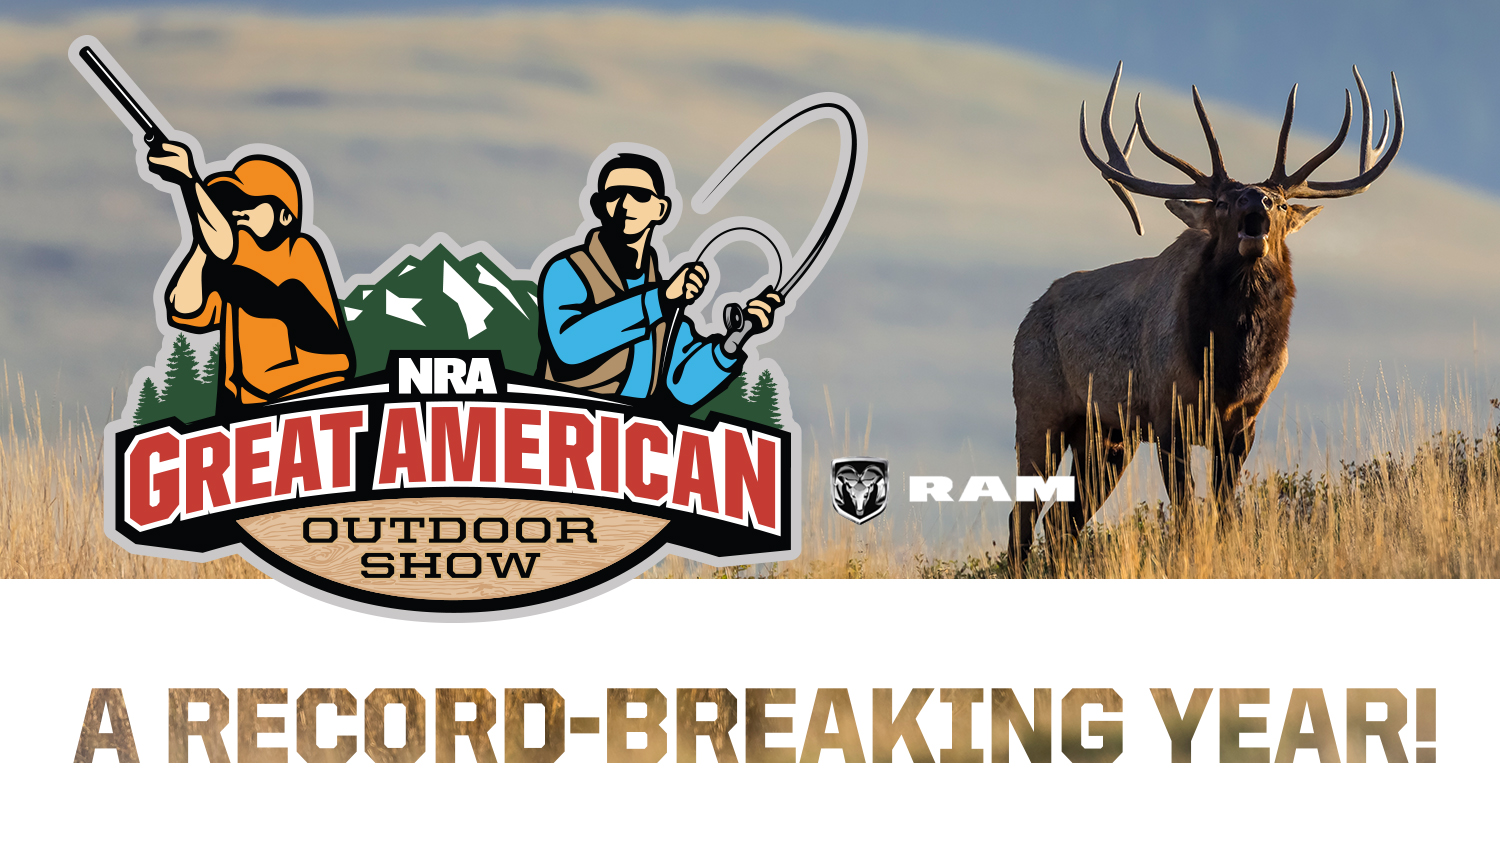 NRA's Sixth Annual Great American Outdoor Show Continues Successful Traditions